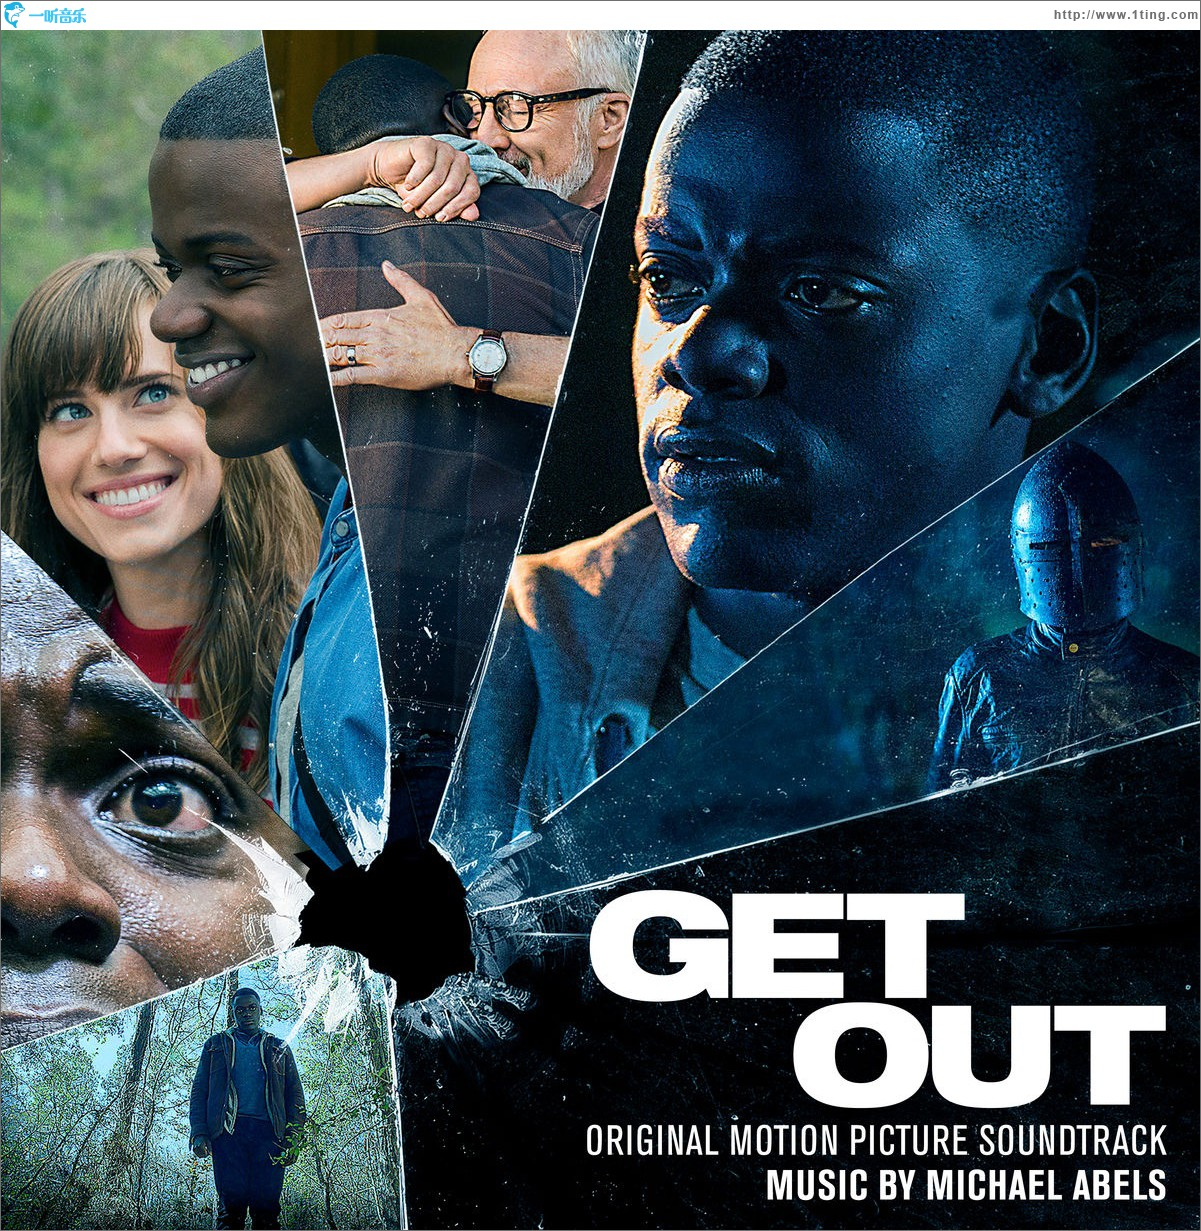 Get Out (Original Motion Picture Soundtrack) 电影《逃出绝命镇》原声带